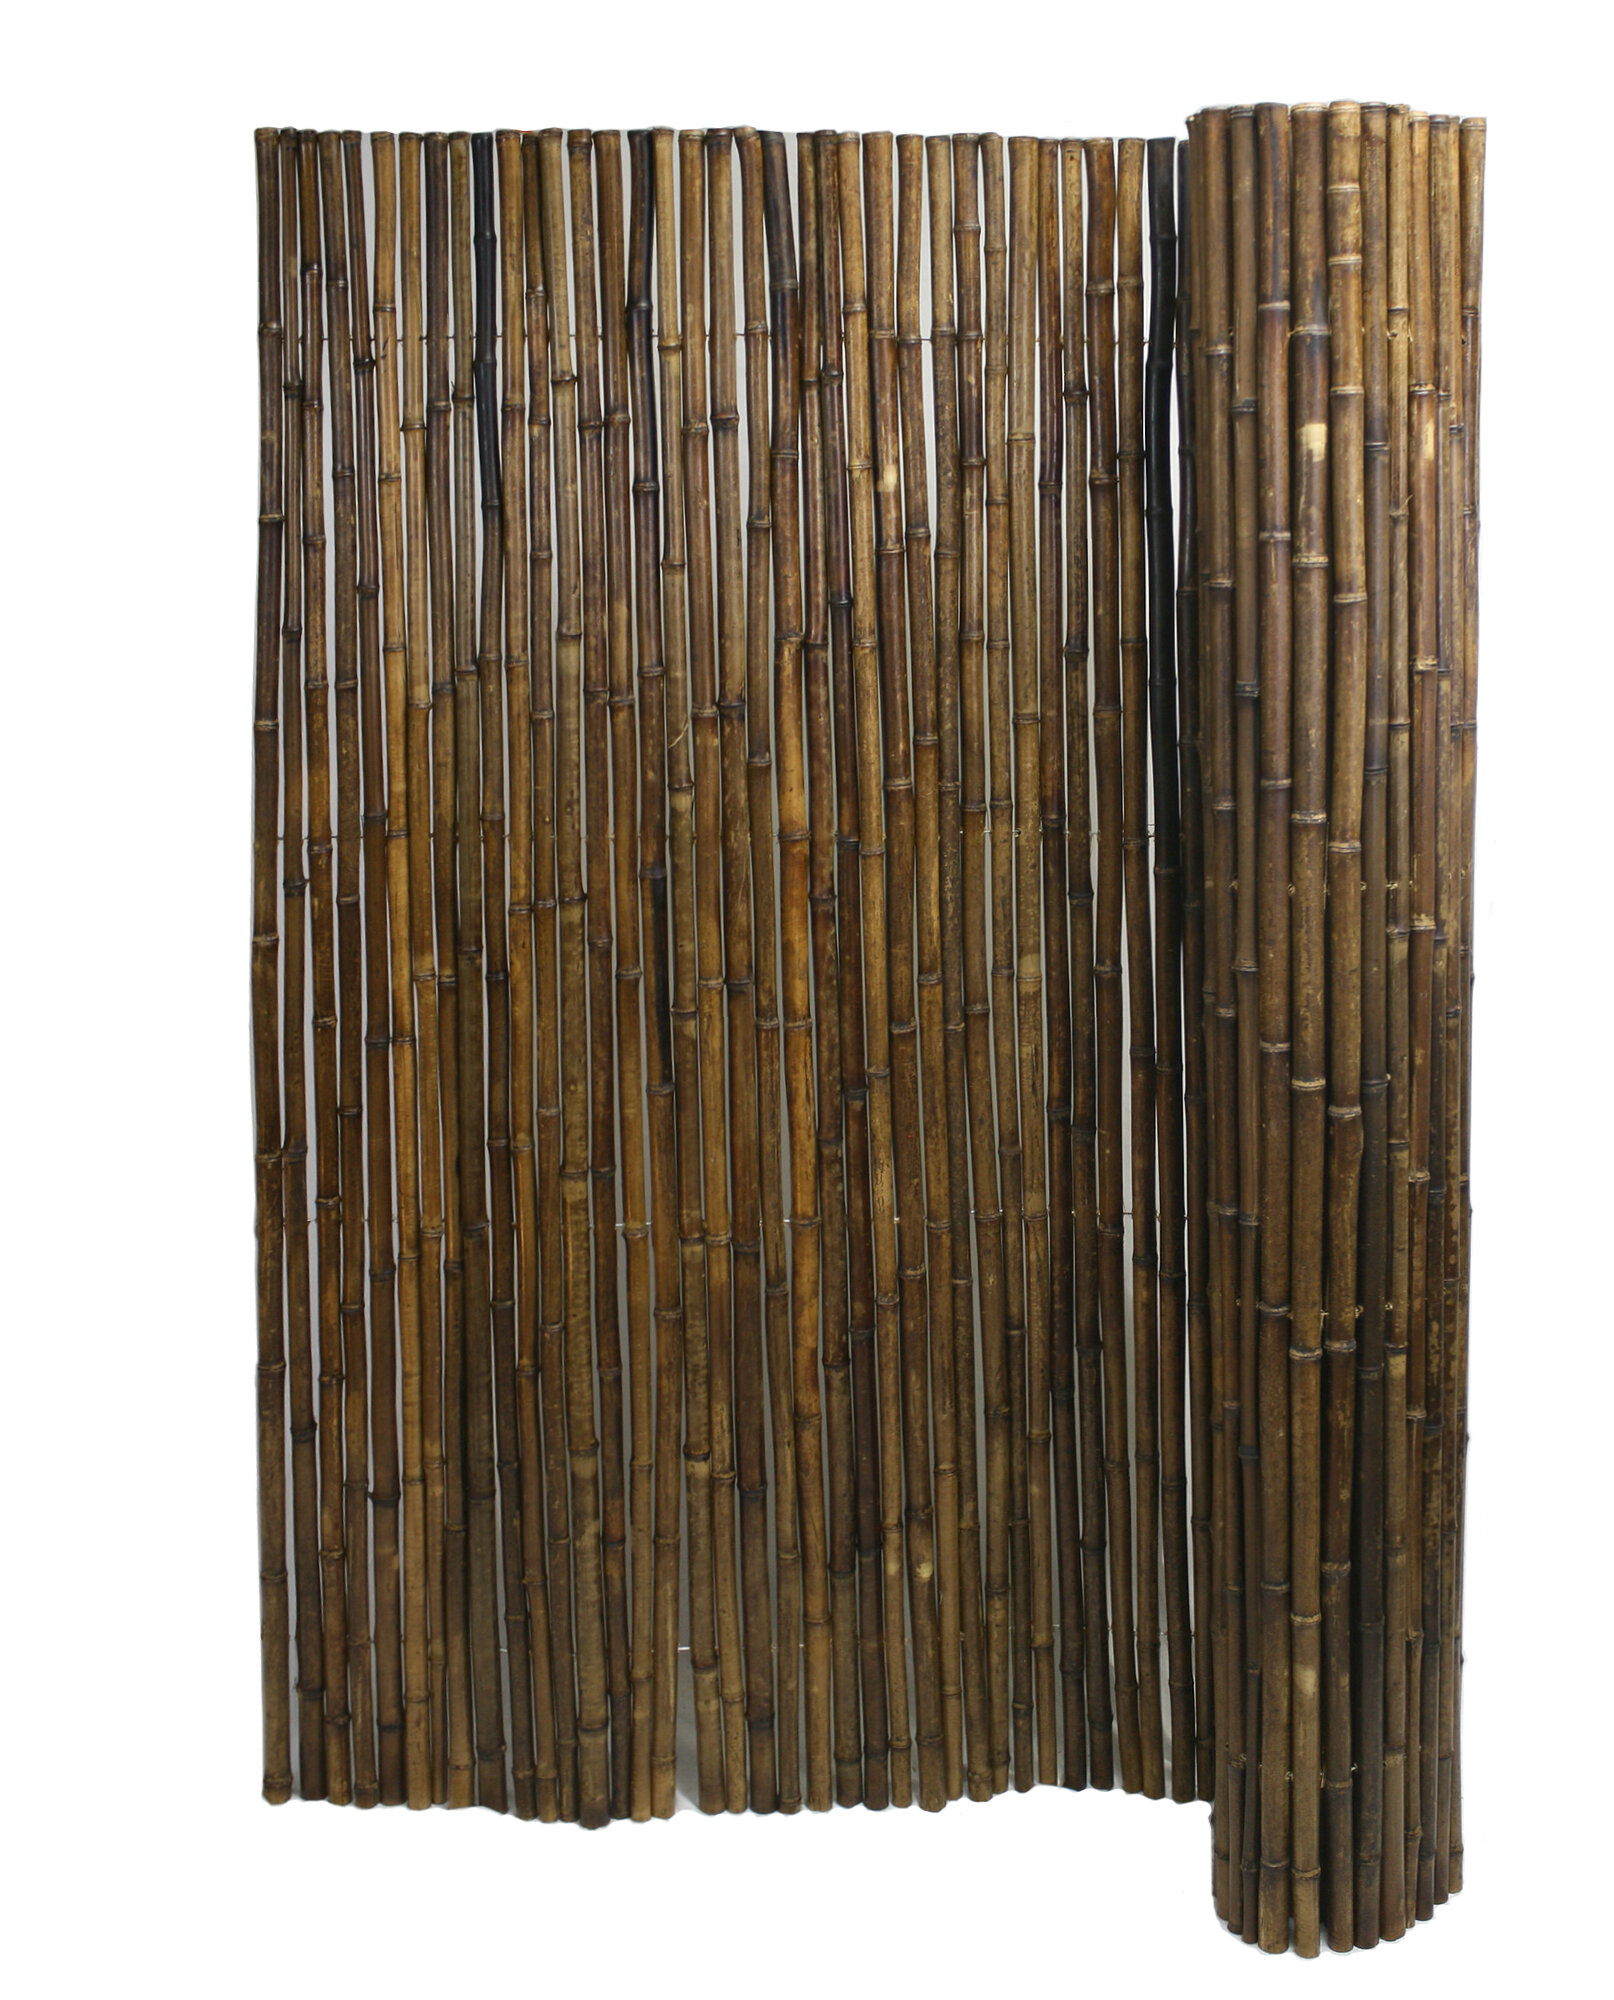 Backyard X Scapes 6 Ft H X 8 Ft W Rolled Bamboo Fence Panel Reviews